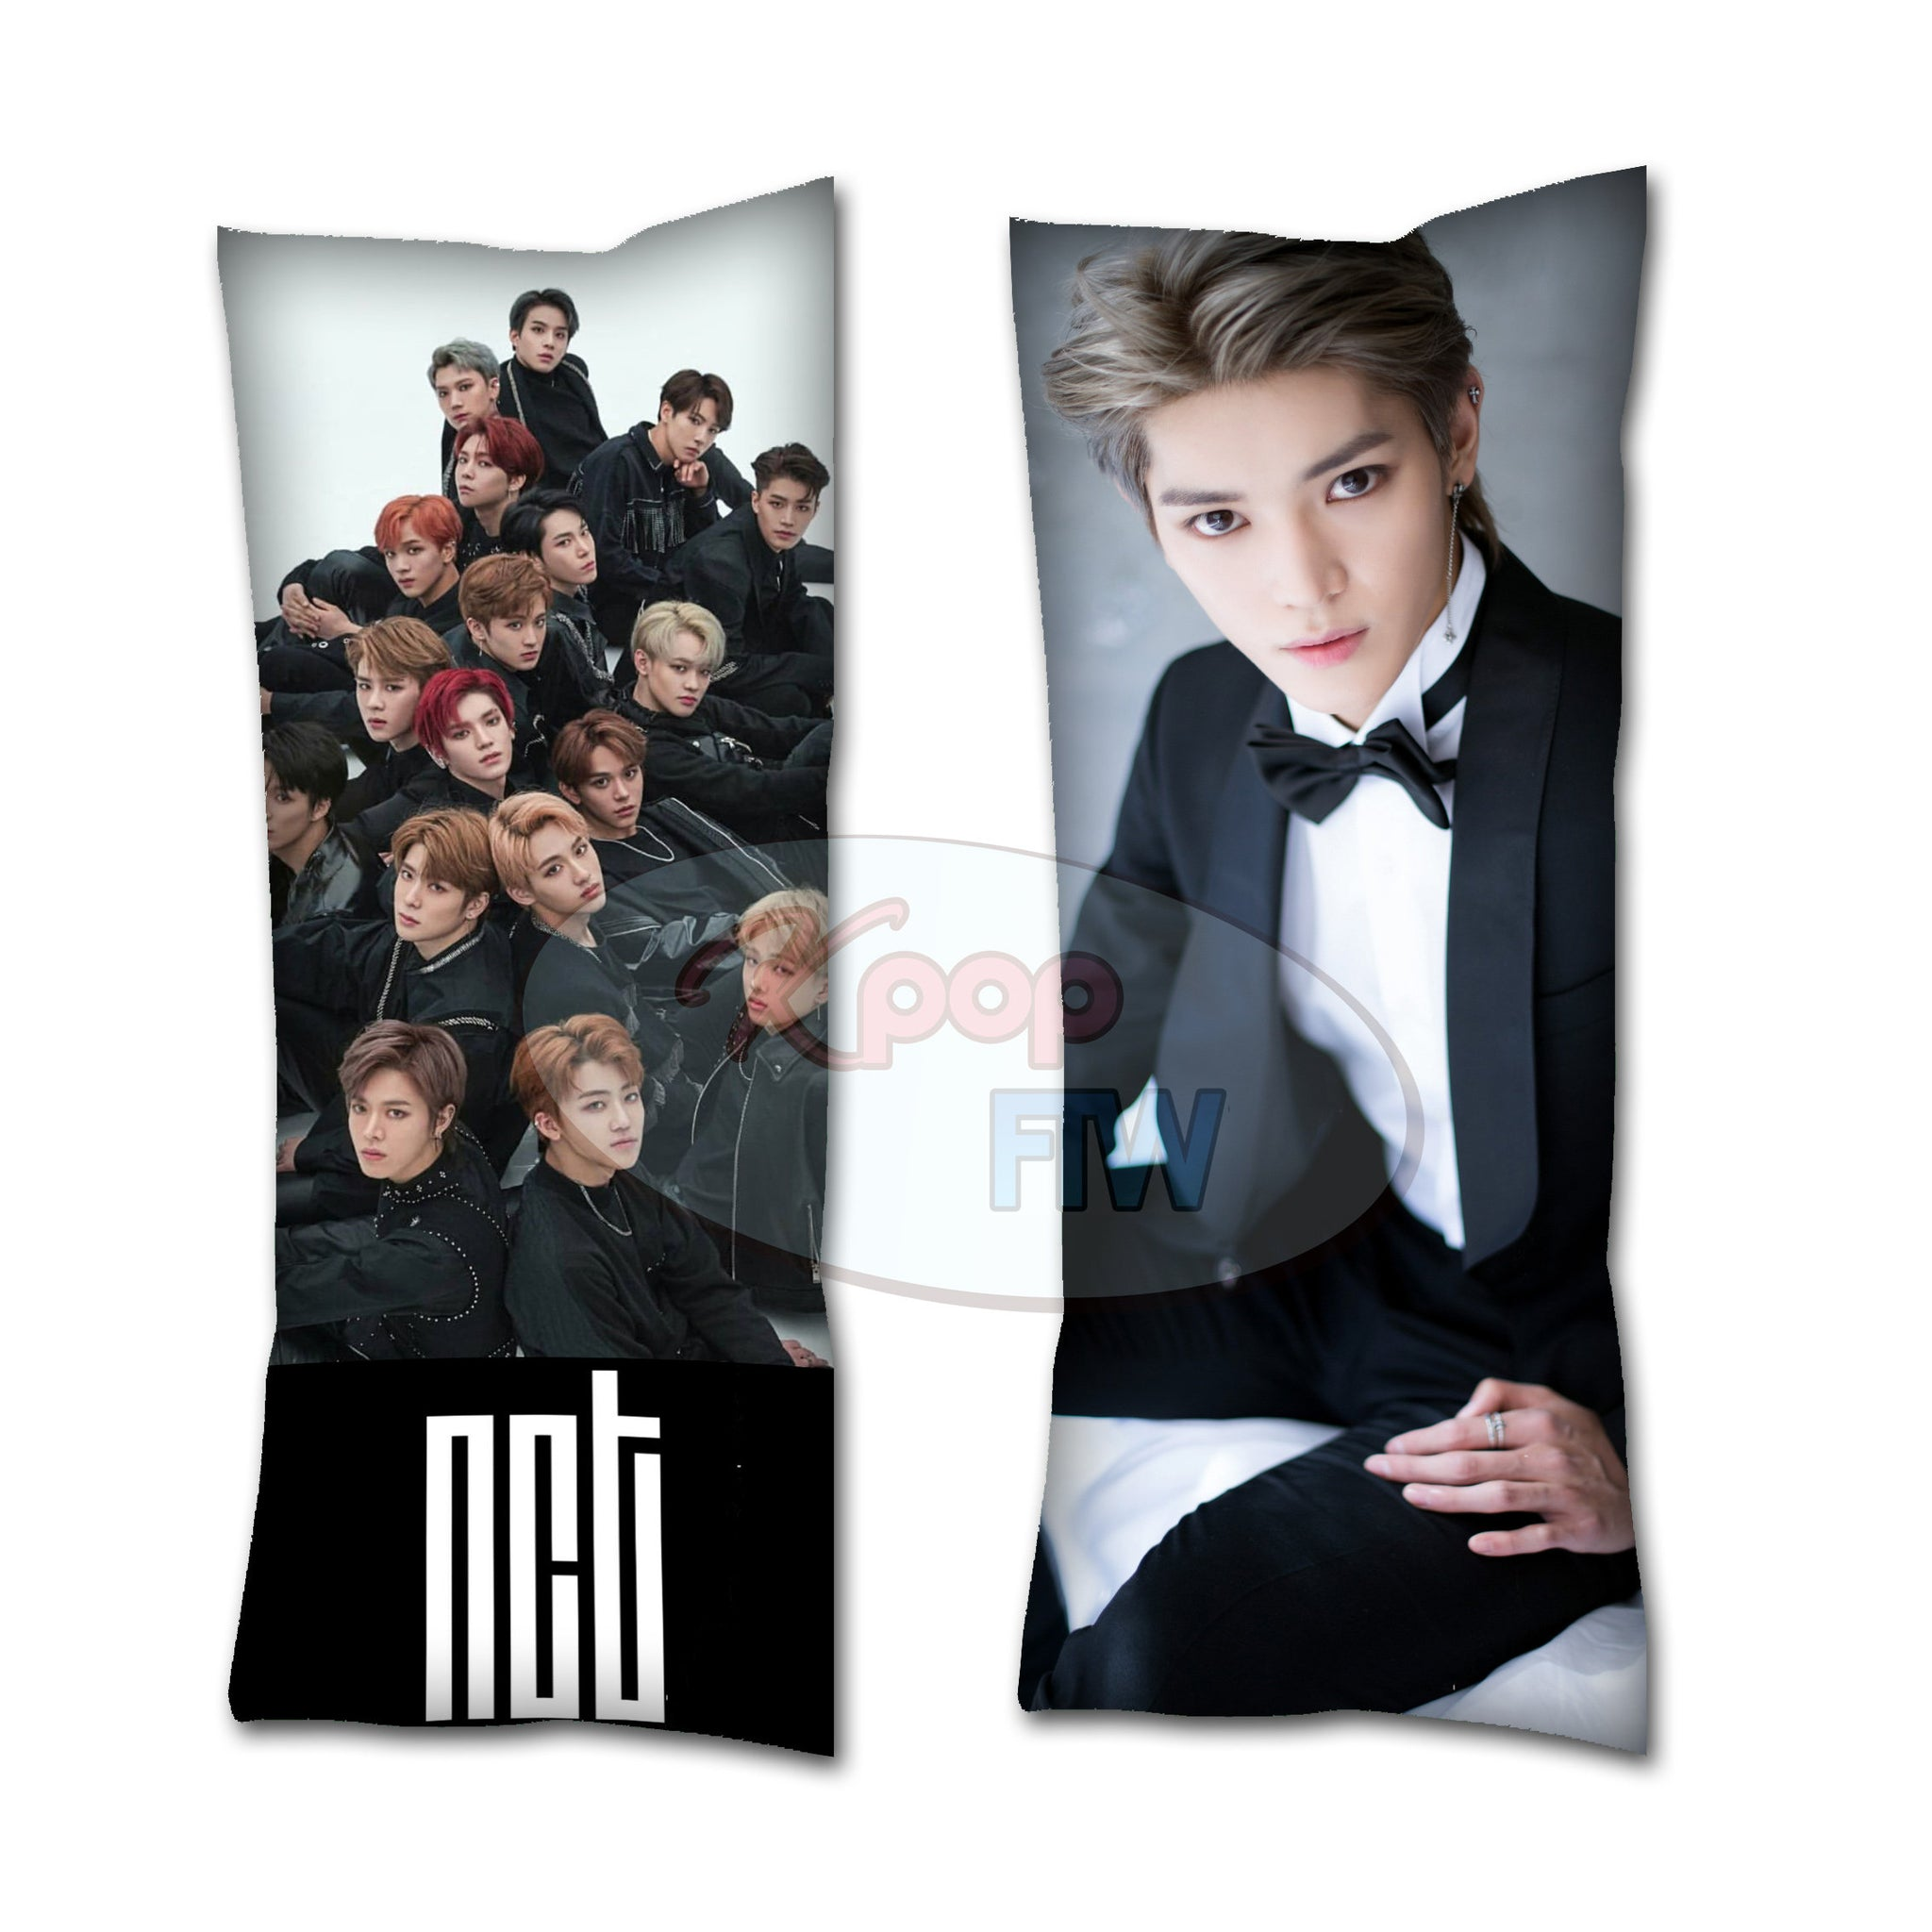 NCT 127 Taeyong Body Pillow - Kpop FTW